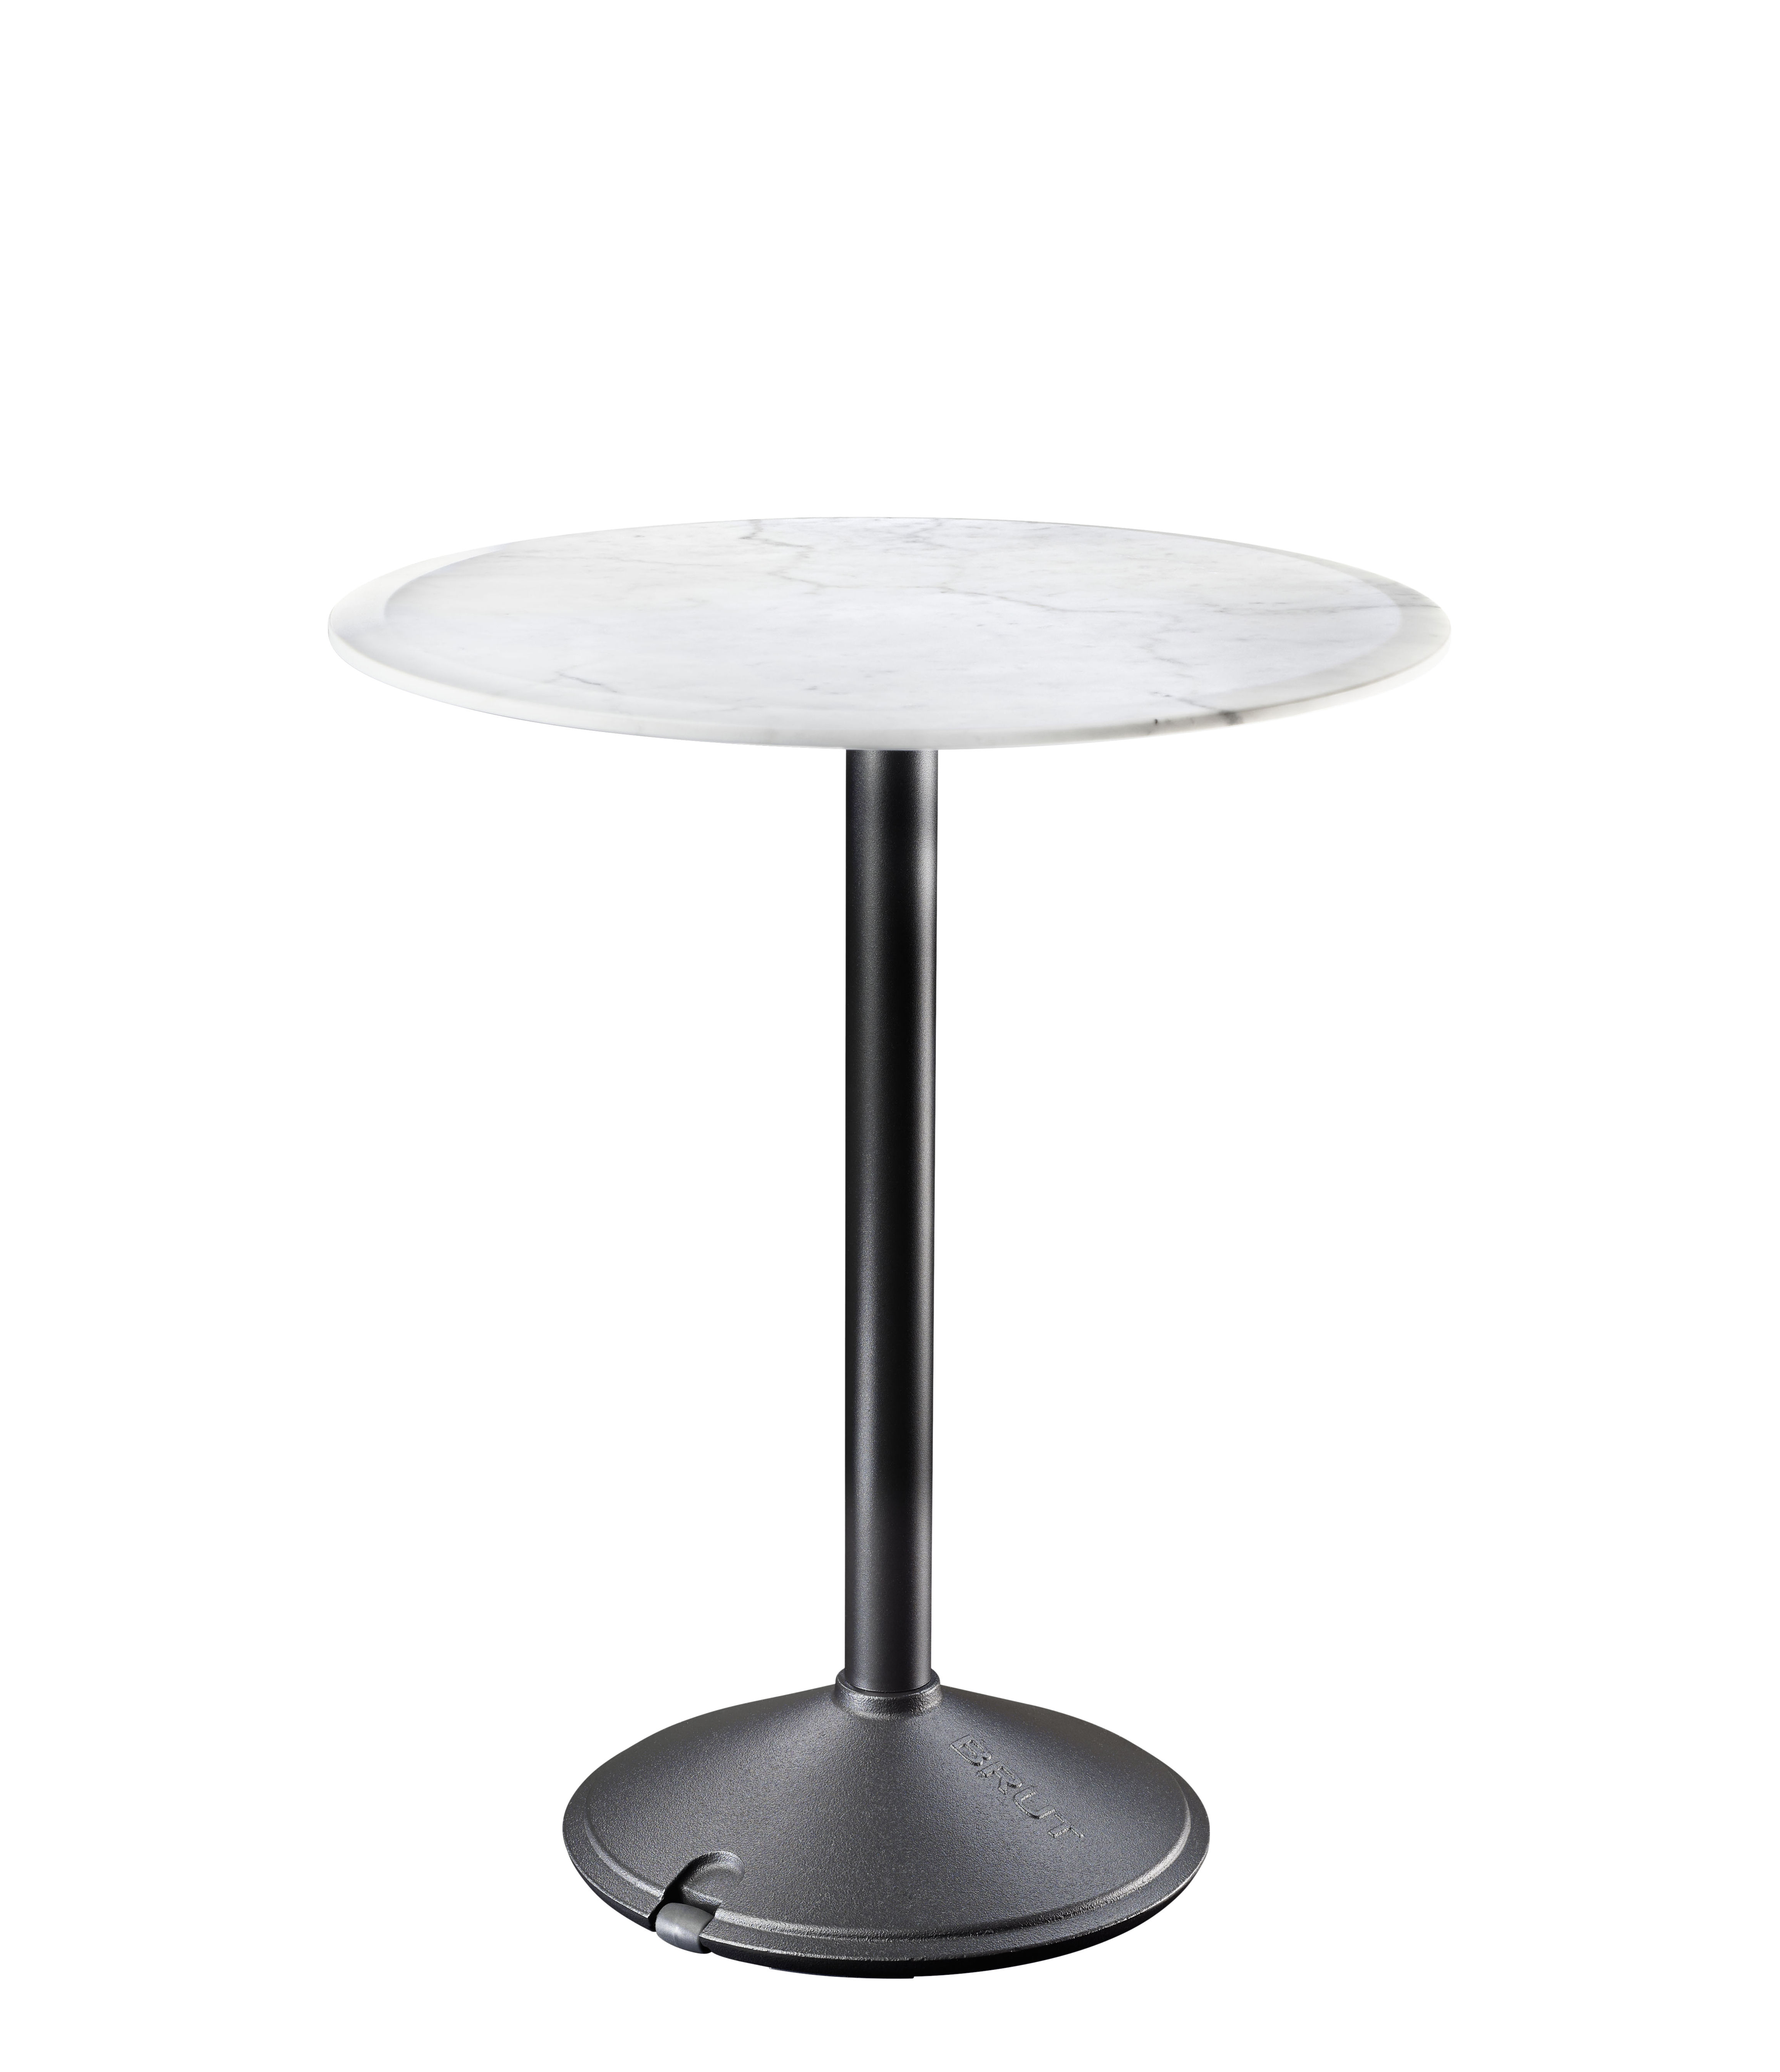 Furniture - Coffee Tables - Brut Small table - / Marble - Outdoor - Ø 60 cm by Magis - White marble / Black base - Cast iron, Marble